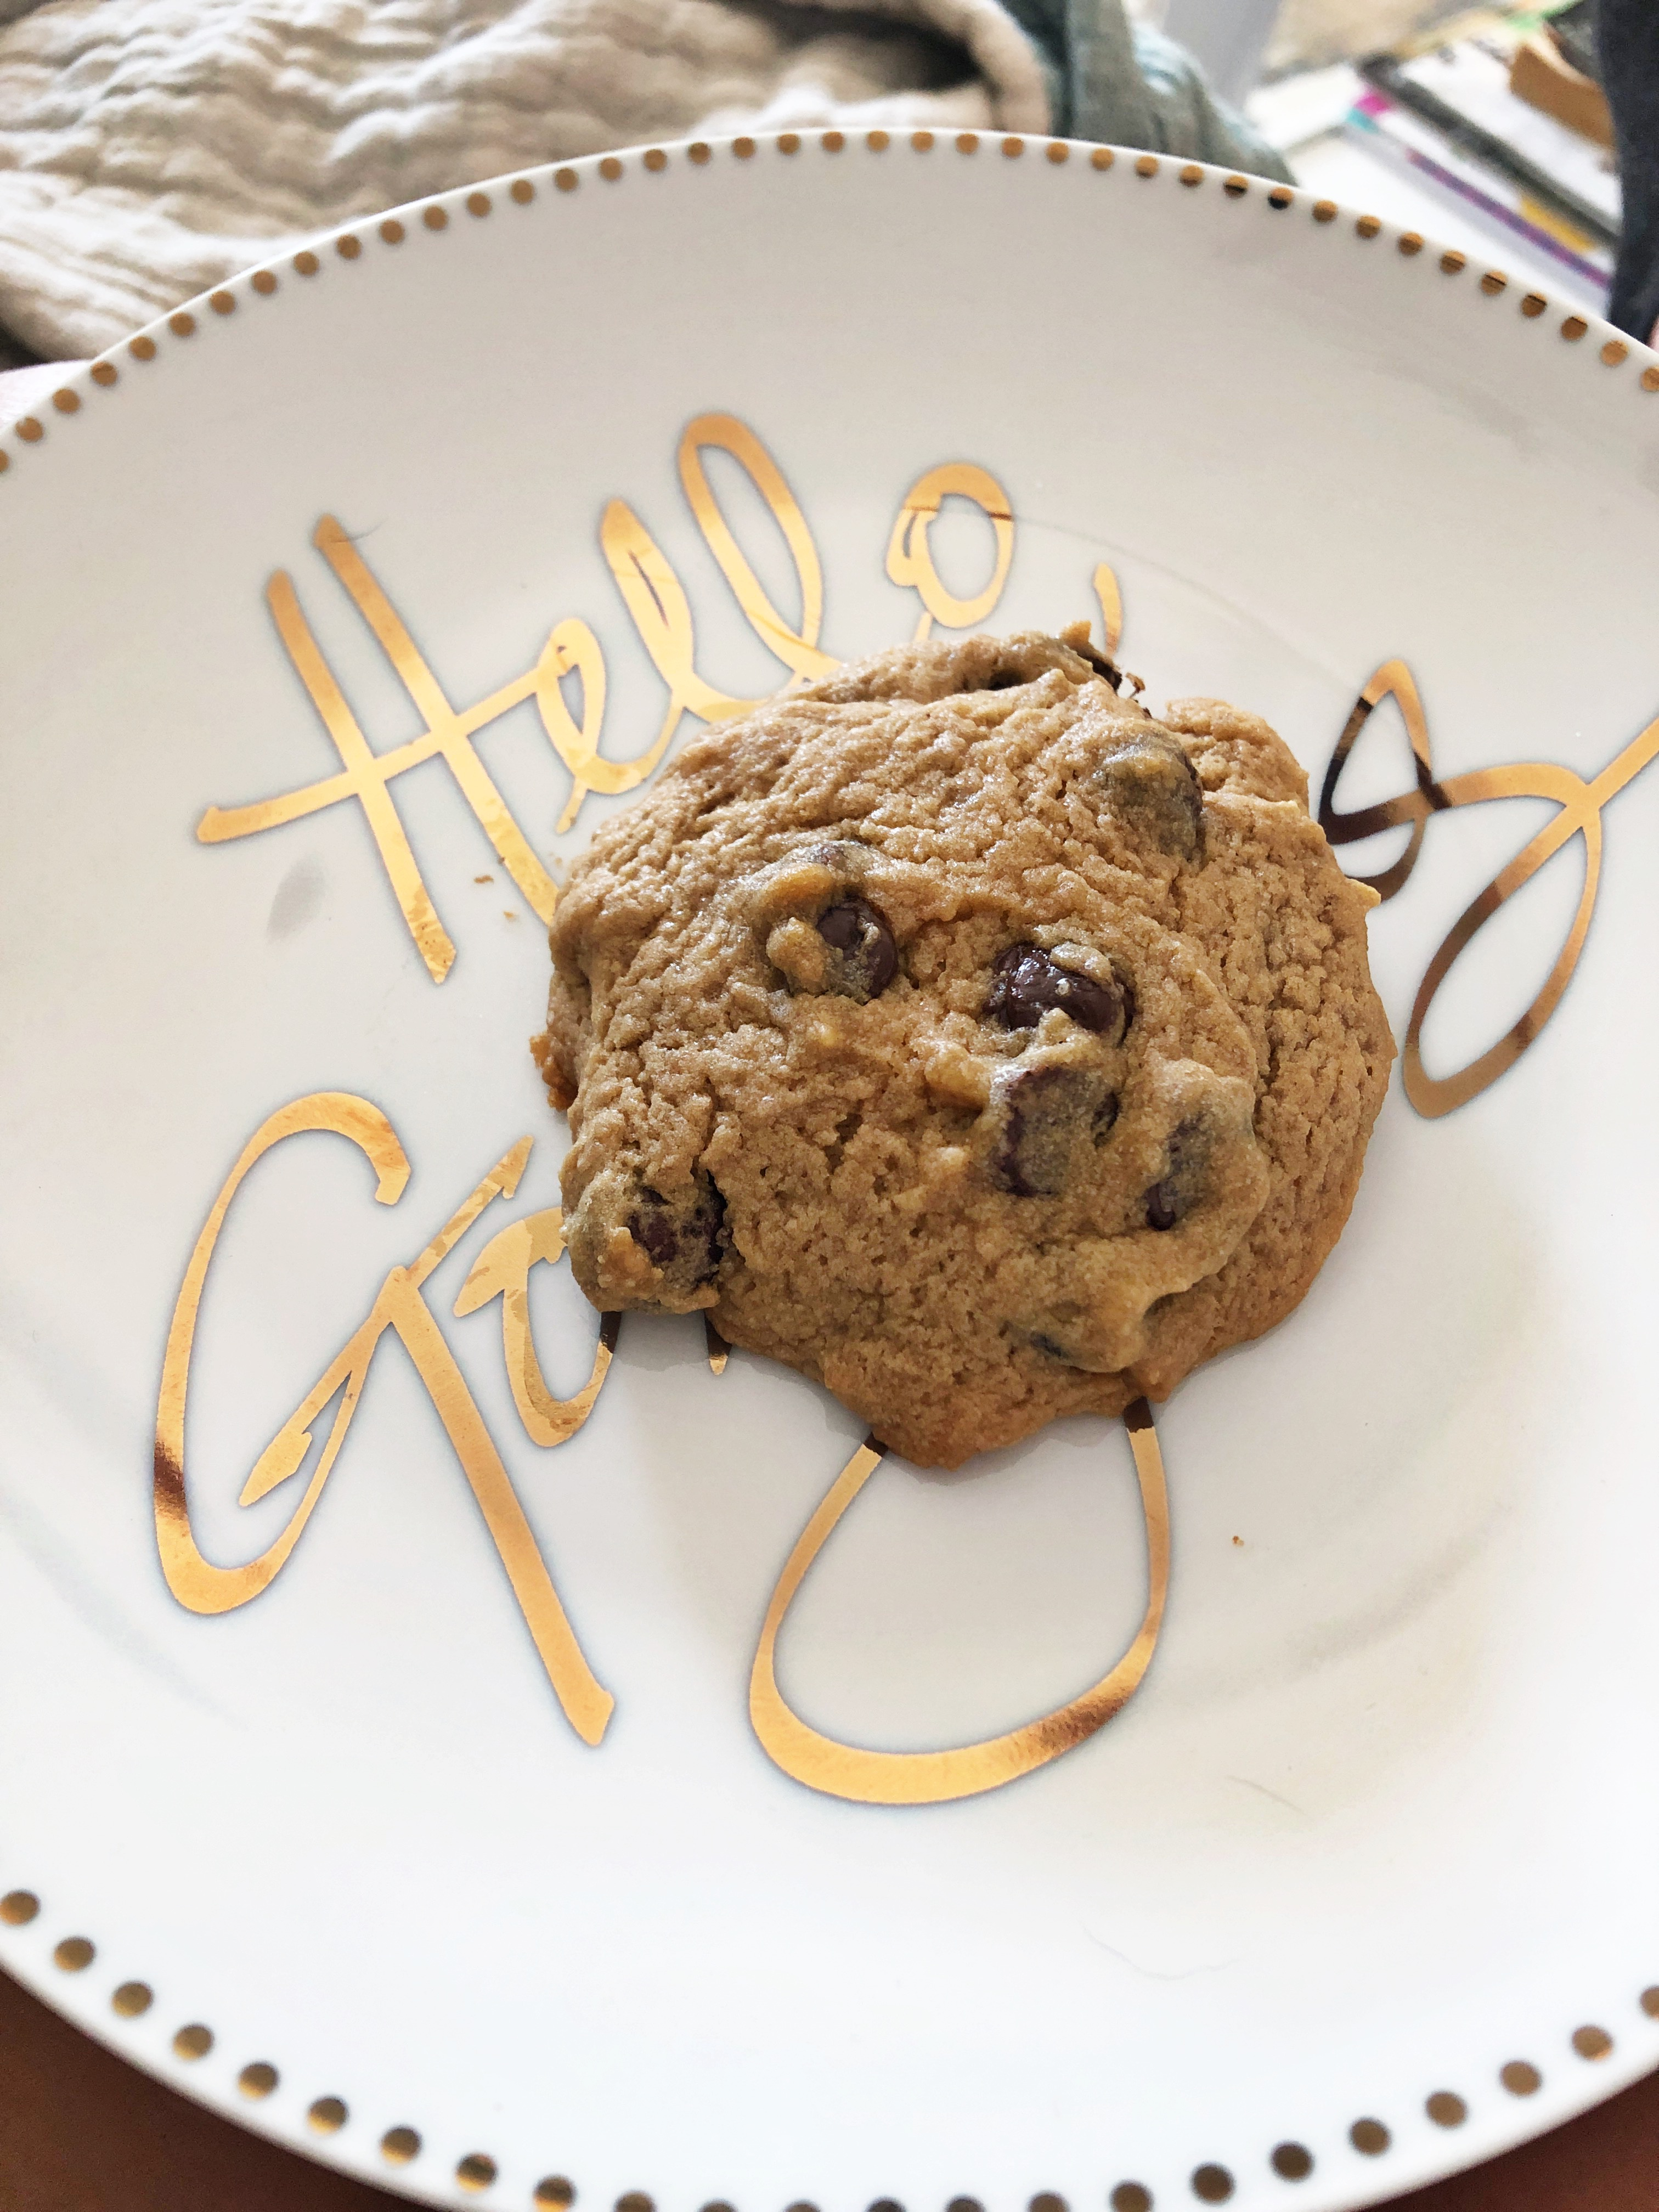 No-Self-Control Cookie (Single-Serving Cookie)